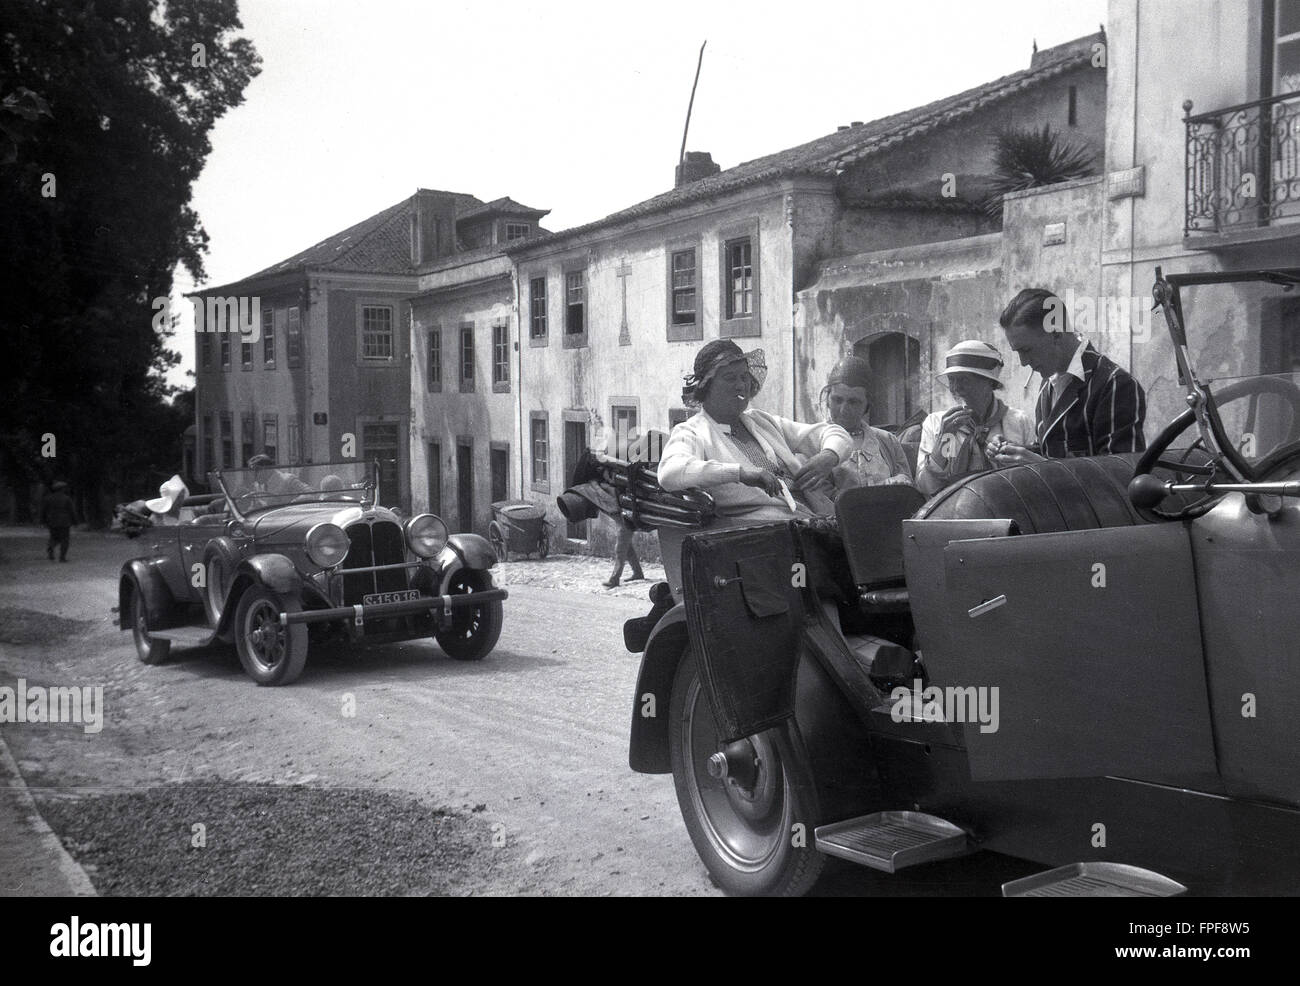 1930s historical, people on a Grand Tour of Europe in an open topped car enjoying a cigarette. - Stock Image